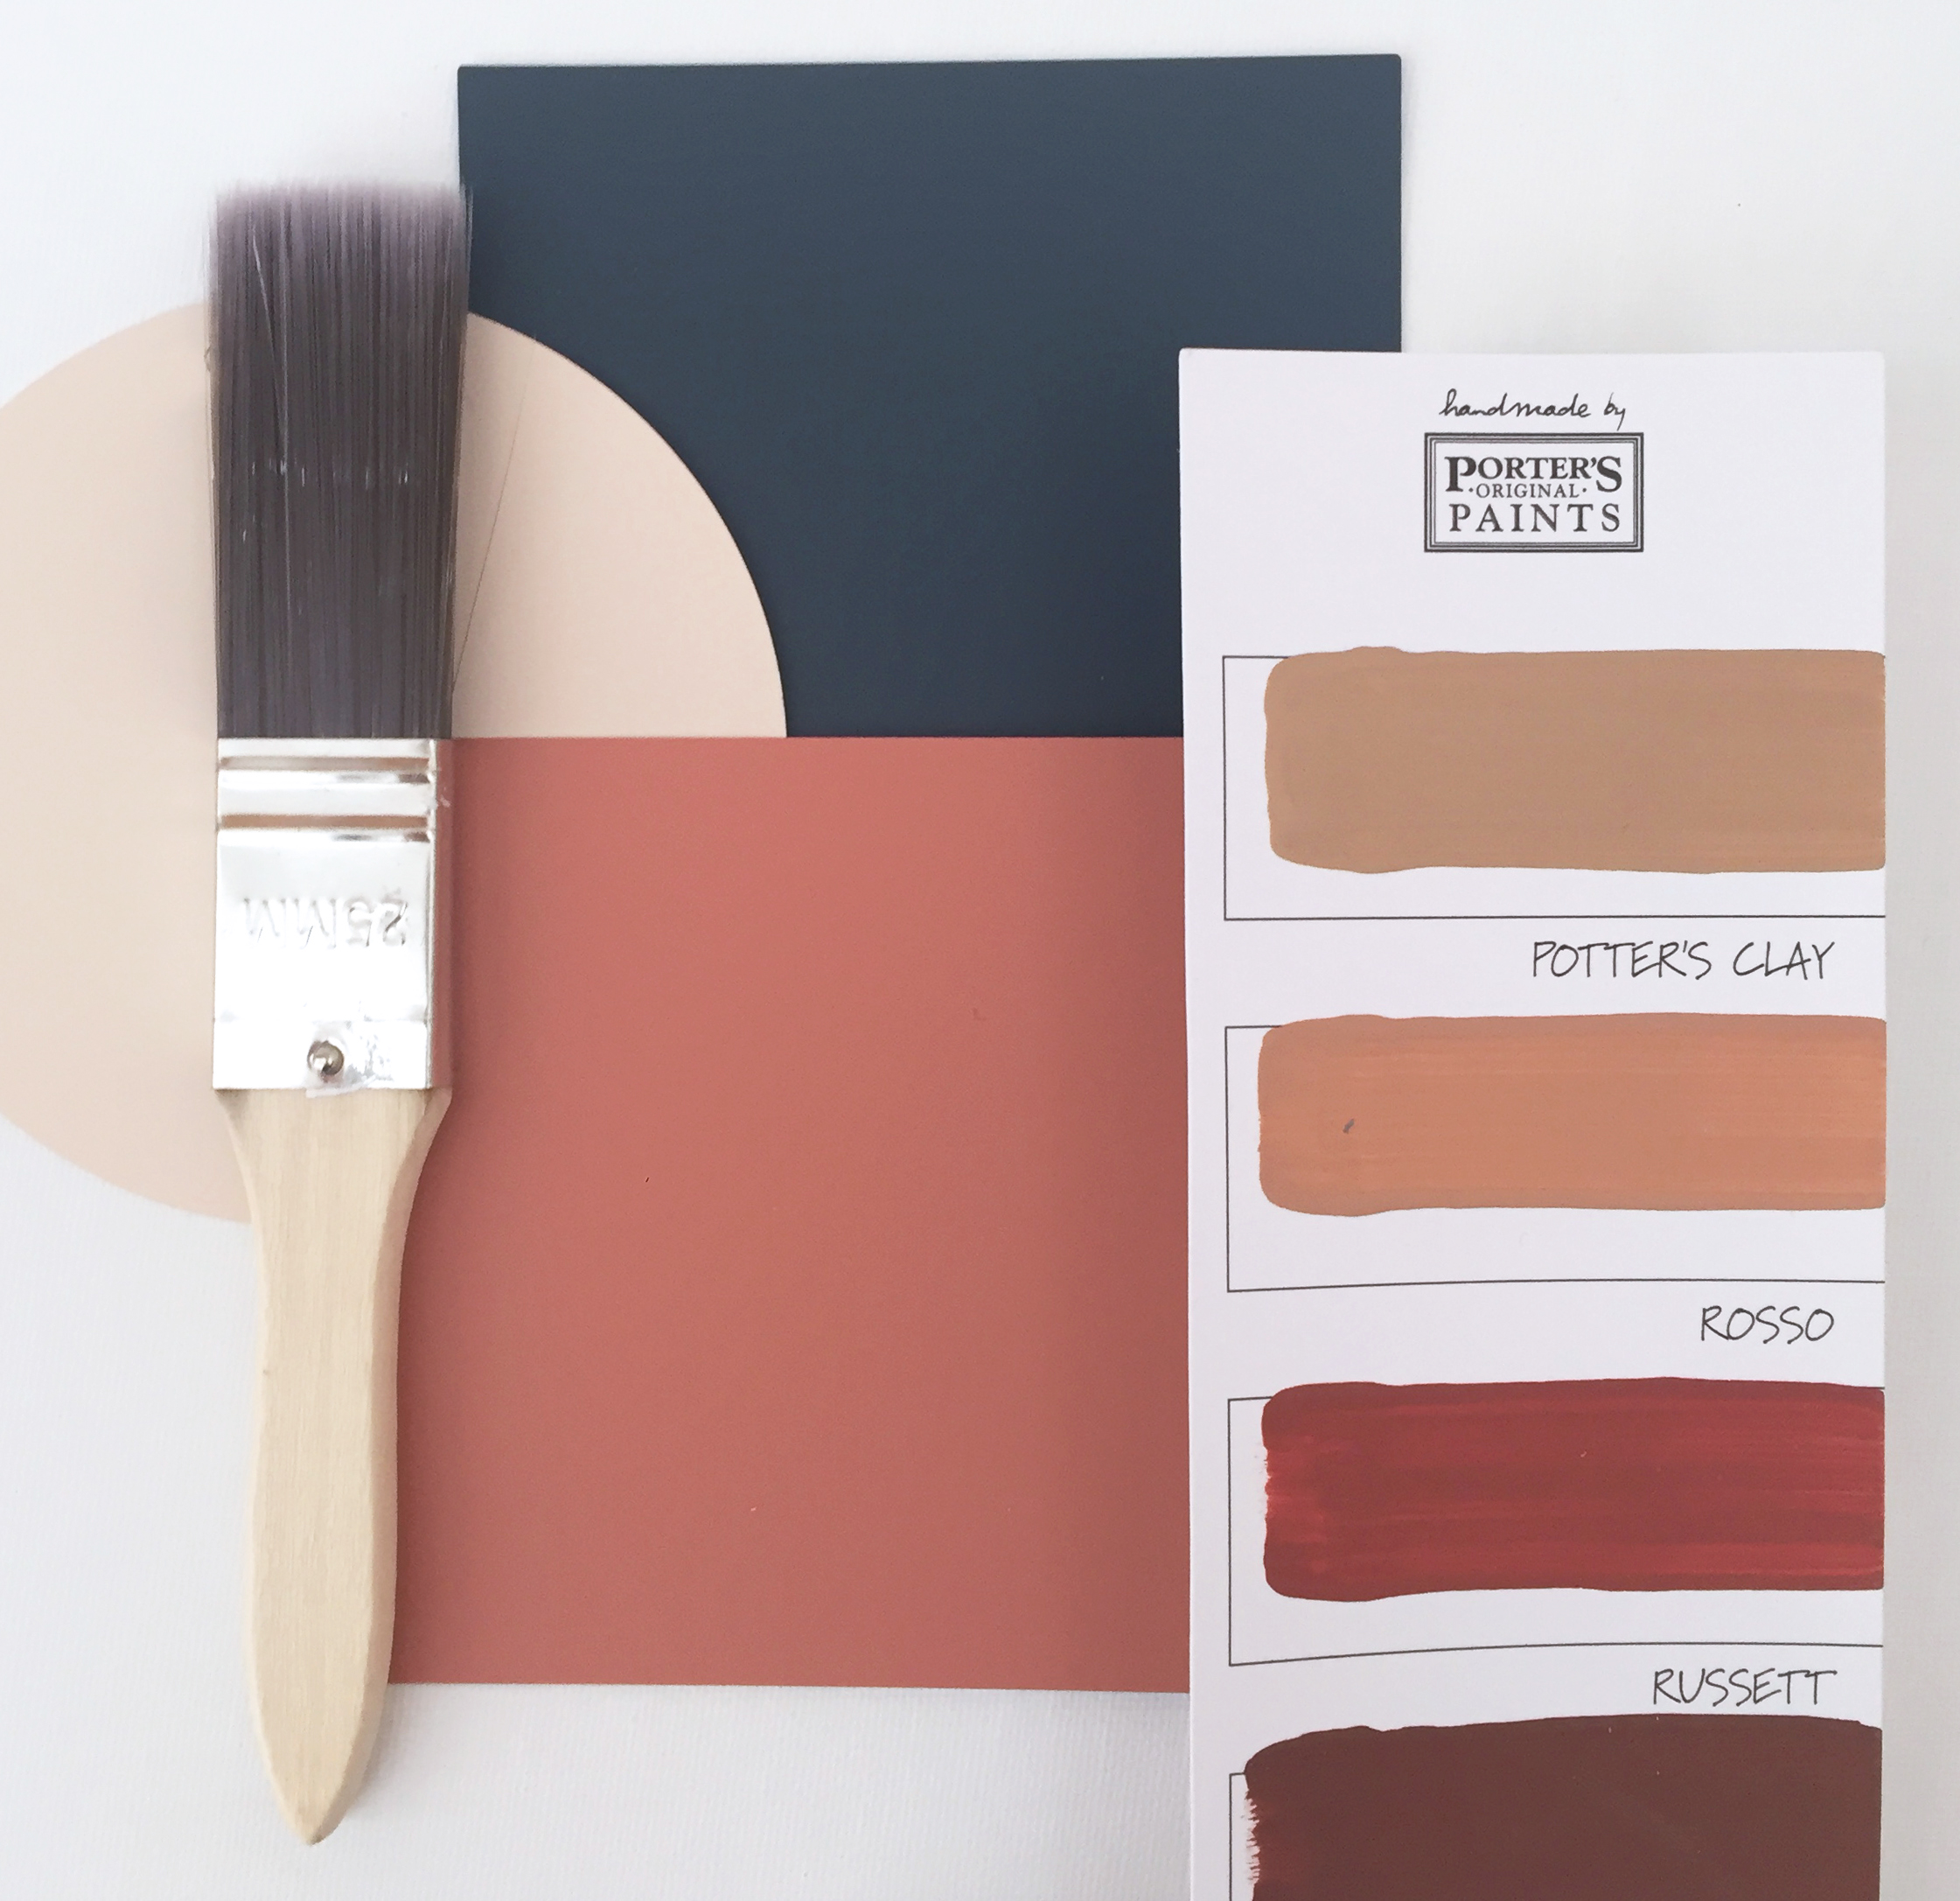 Paint brush with paint swatch samples